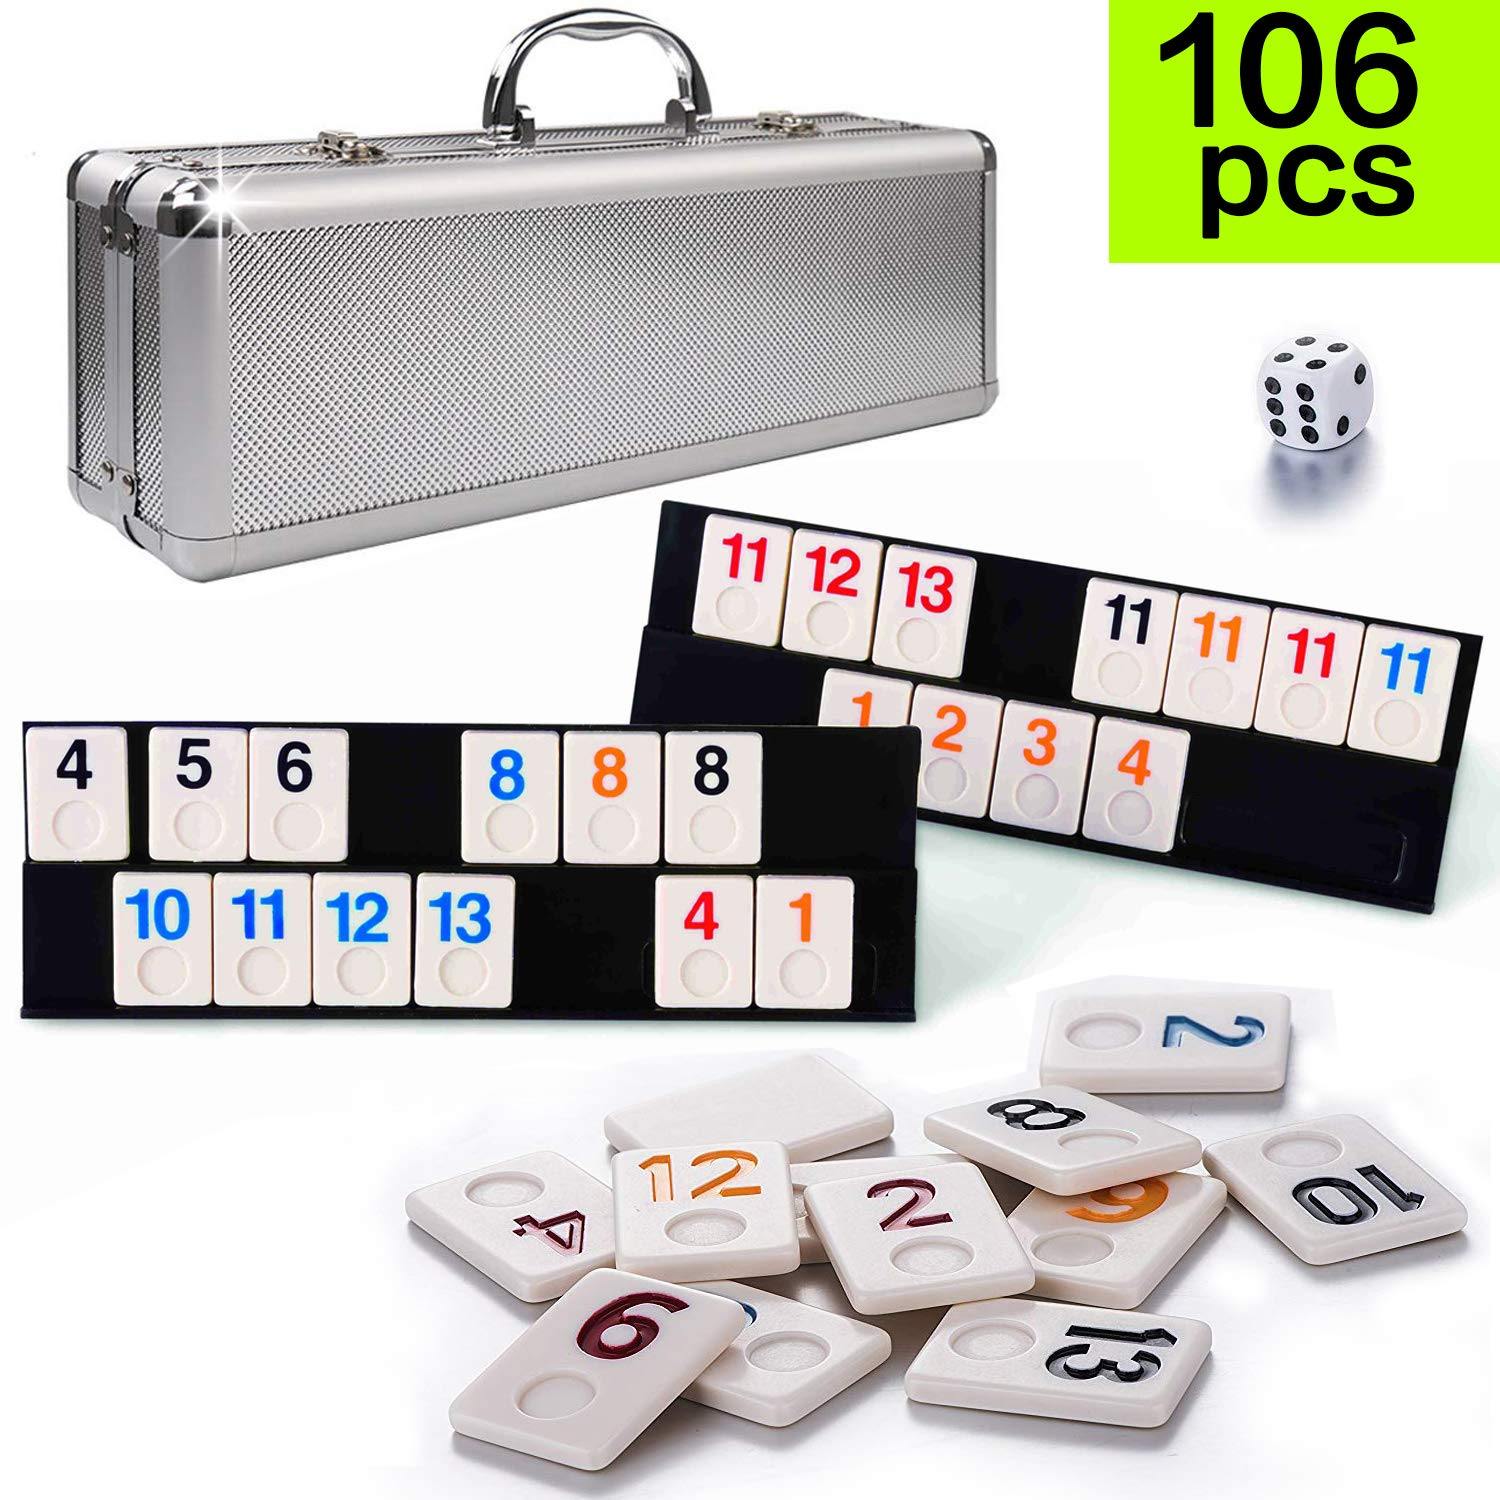 106 Tiles Travel Rummy Game - Tocebe Rummy Tiles Game with Aluminum Case & 4 Anti-Skid Durable Trays for Kids by Tocebe